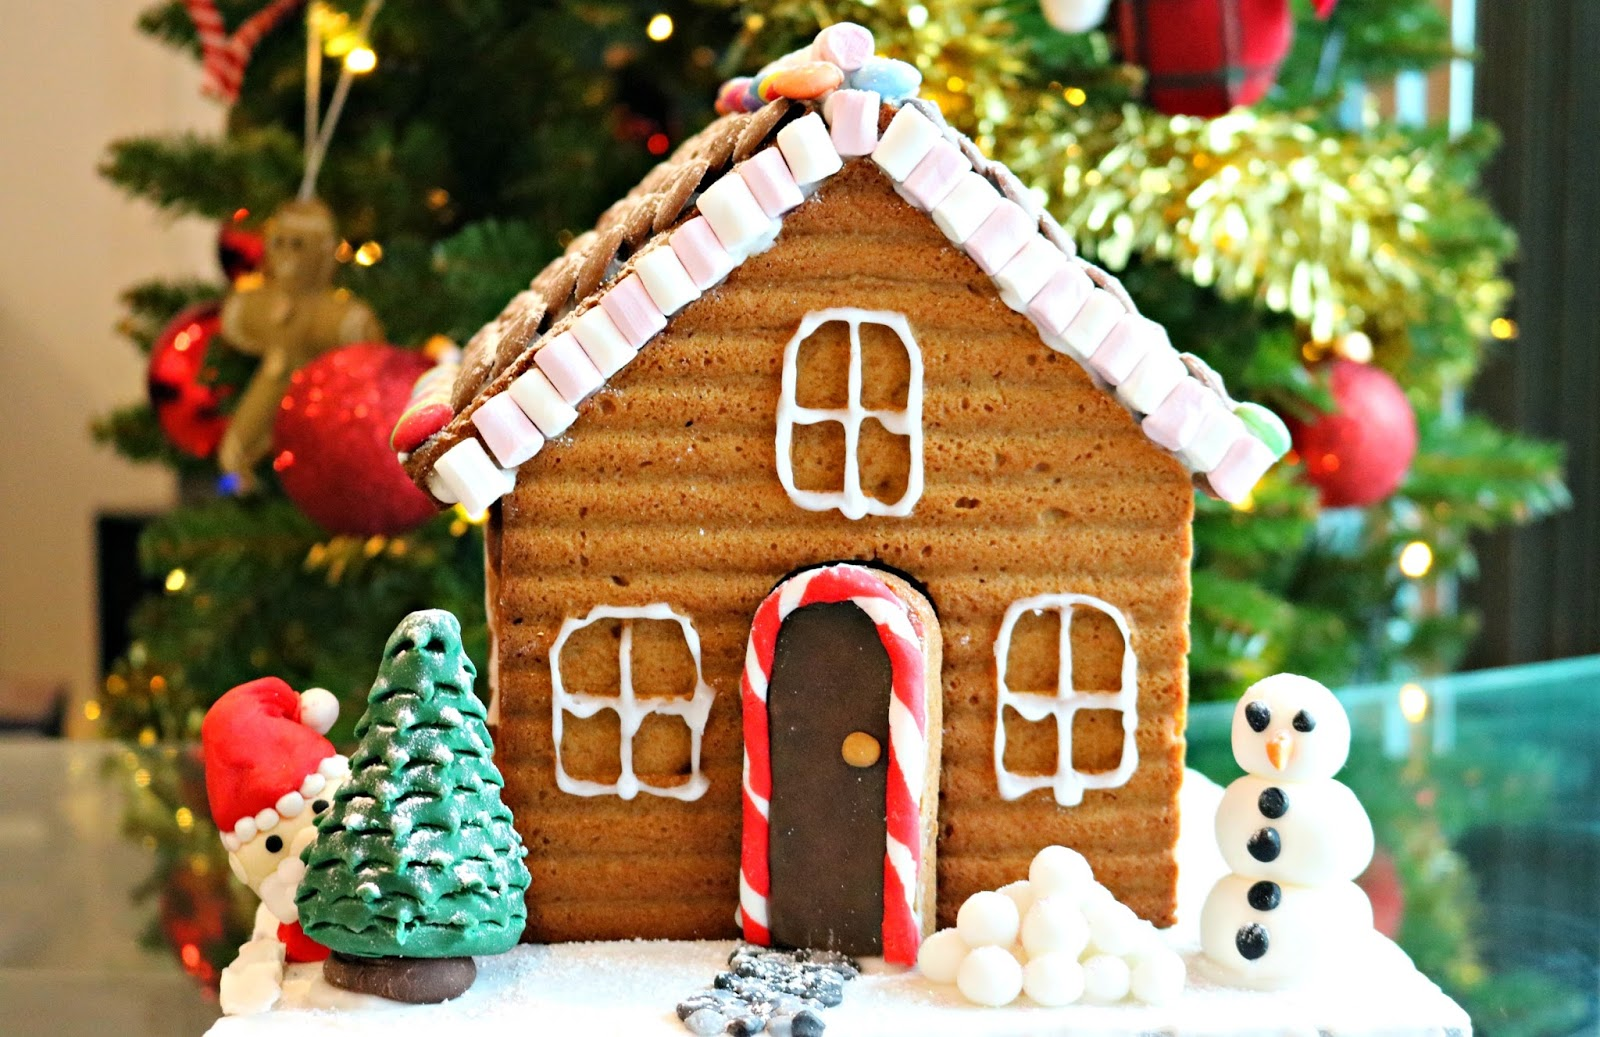 How To Decorate A Gingerbread House Little Lauren 39 S Blog